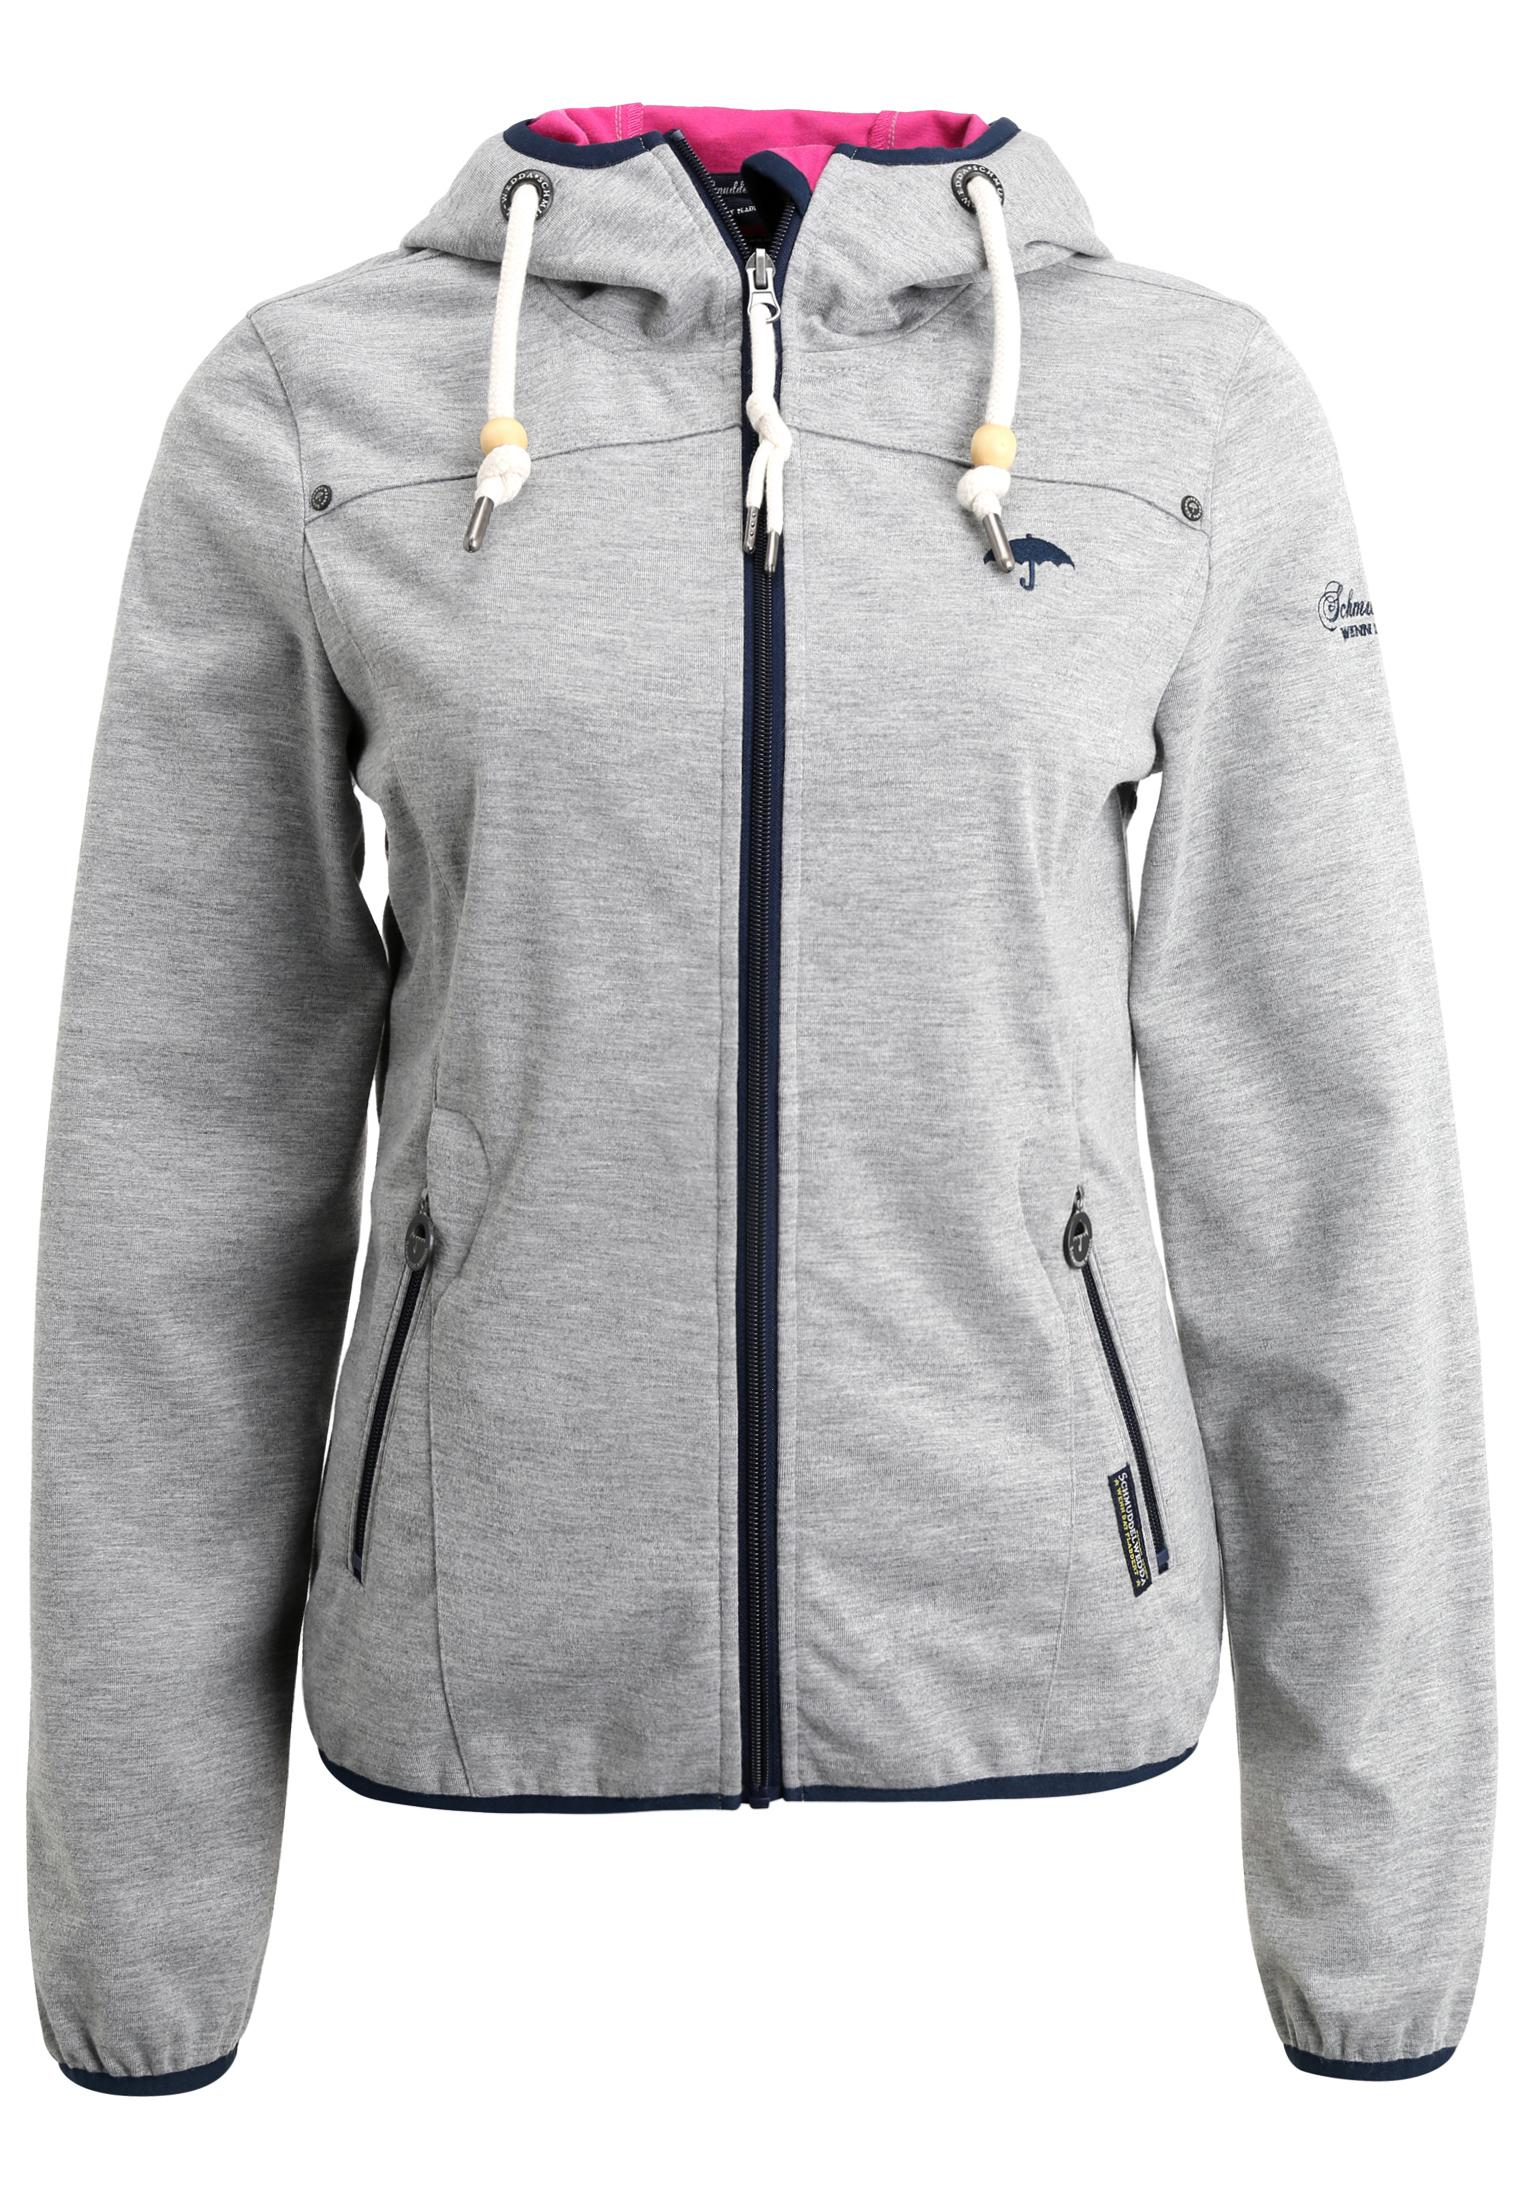 Outdoorjacke damen grau